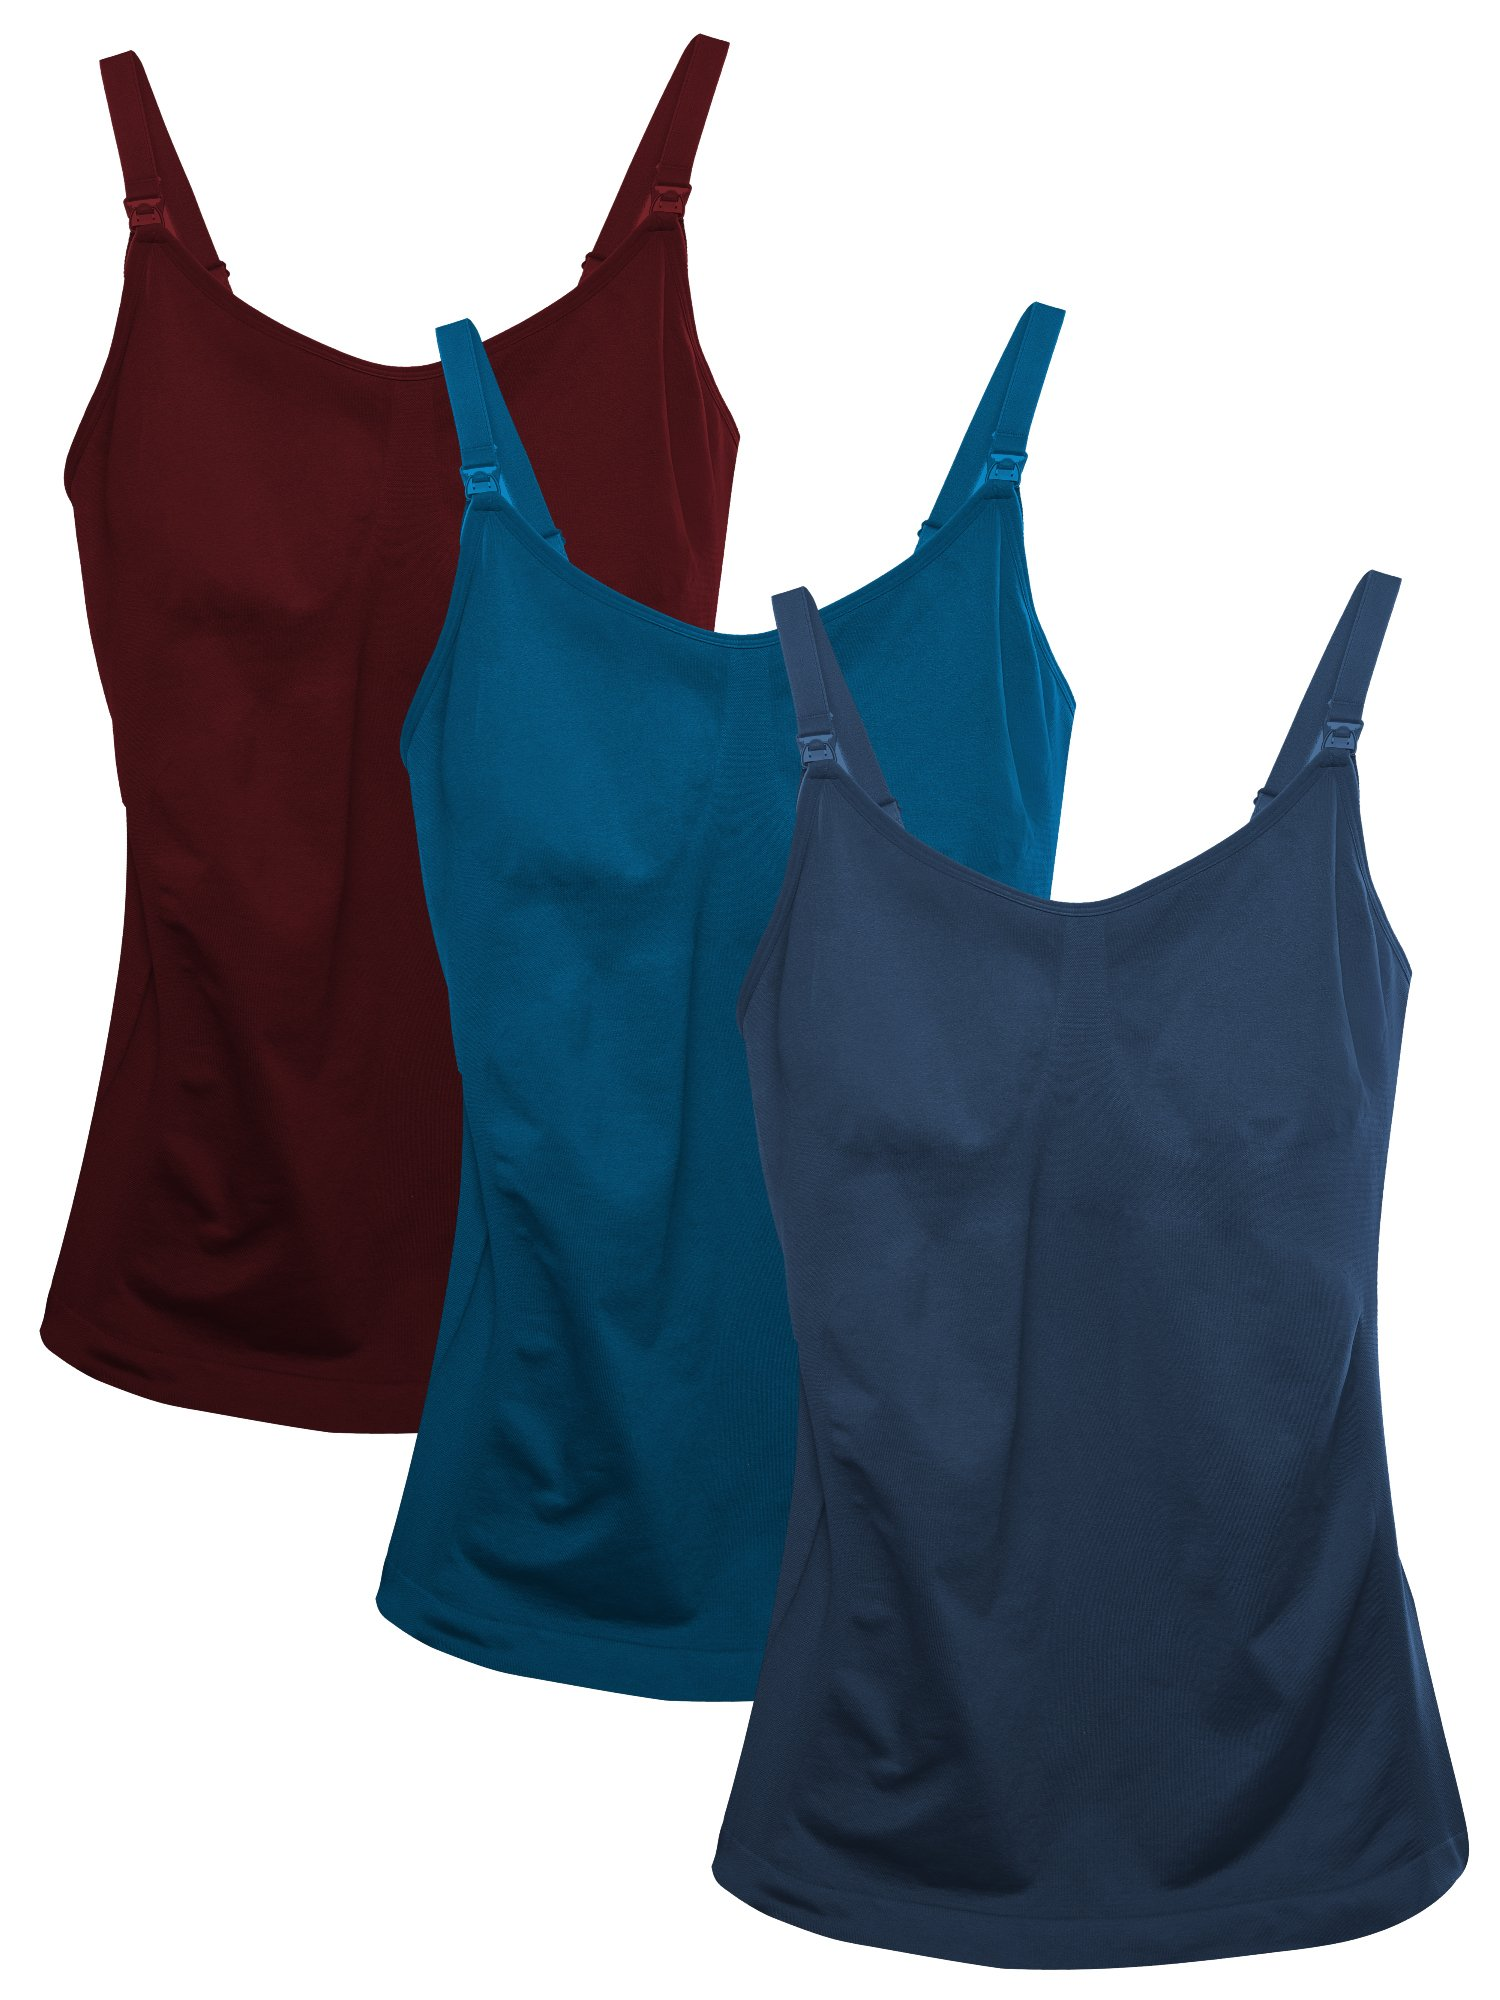 Mother's Breast Feeding Tops,Maternity Nursing Cami with Build in Bra 3PCS/Pack Red Wine,Sky Blue,Navy Blue S/M